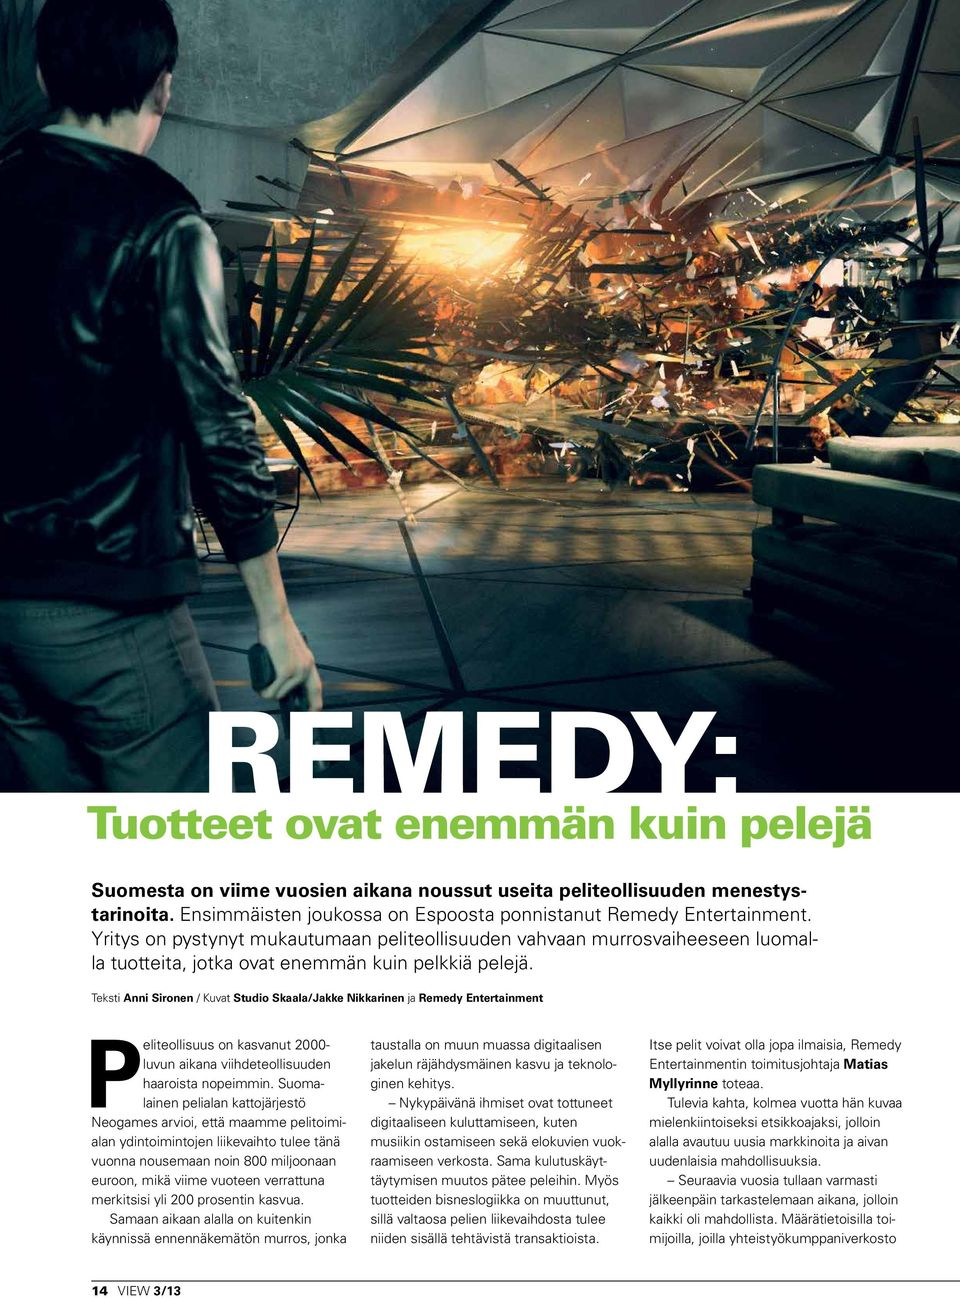 Teksti Anni Sironen / Kuvat Studio Skaala/Jakke Nikkarinen ja Remedy Entertainment Peliteollisuus on kasvanut 2000- luvun aikana viihdeteollisuuden haaroista nopeimmin.